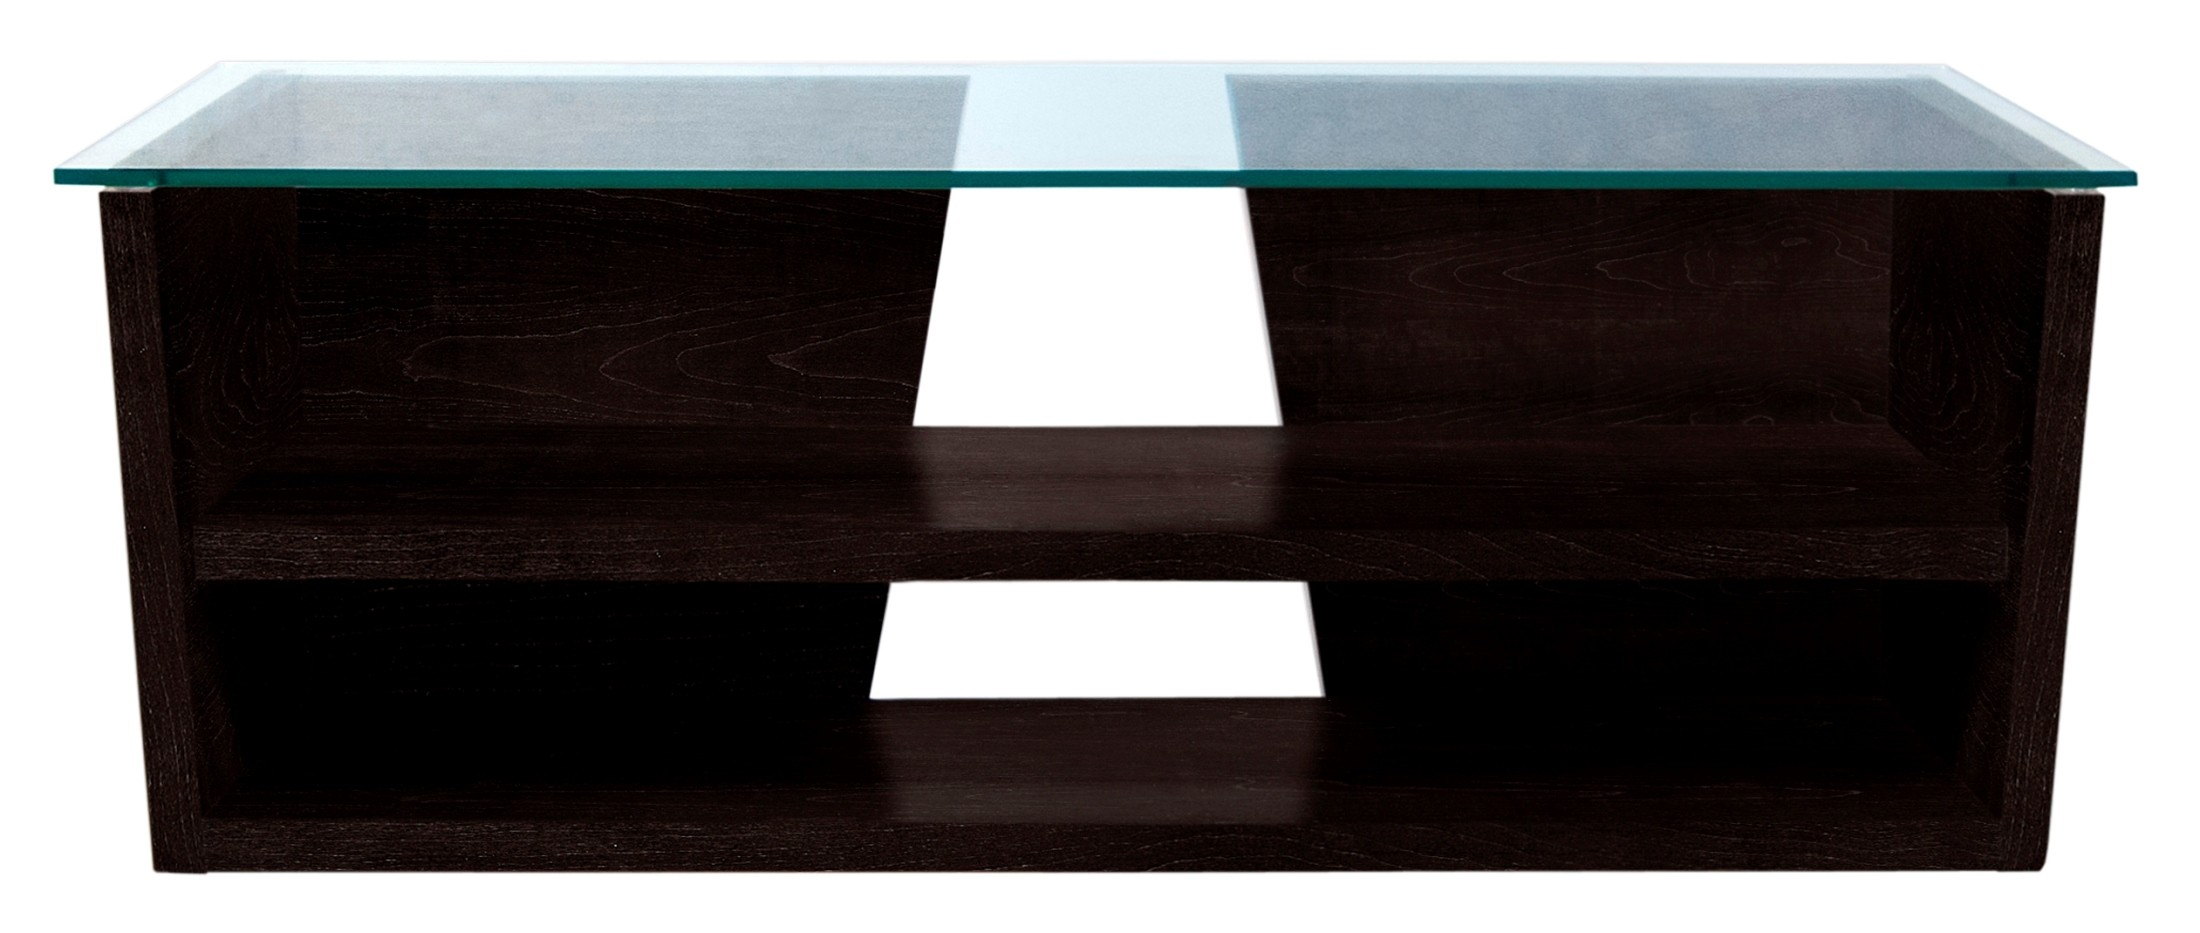 oliva wenge 43 tv console from tema home. Black Bedroom Furniture Sets. Home Design Ideas